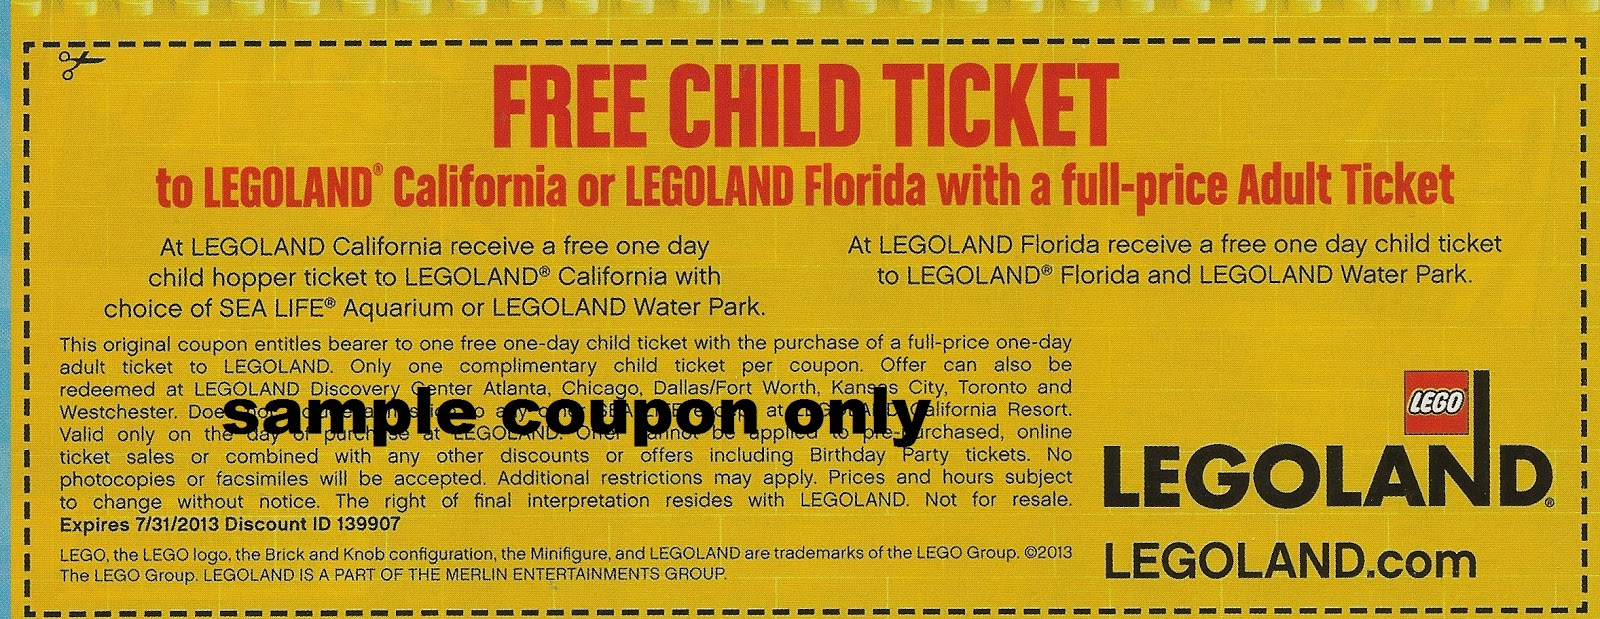 Southern california 2 park flex ticket discount coupons